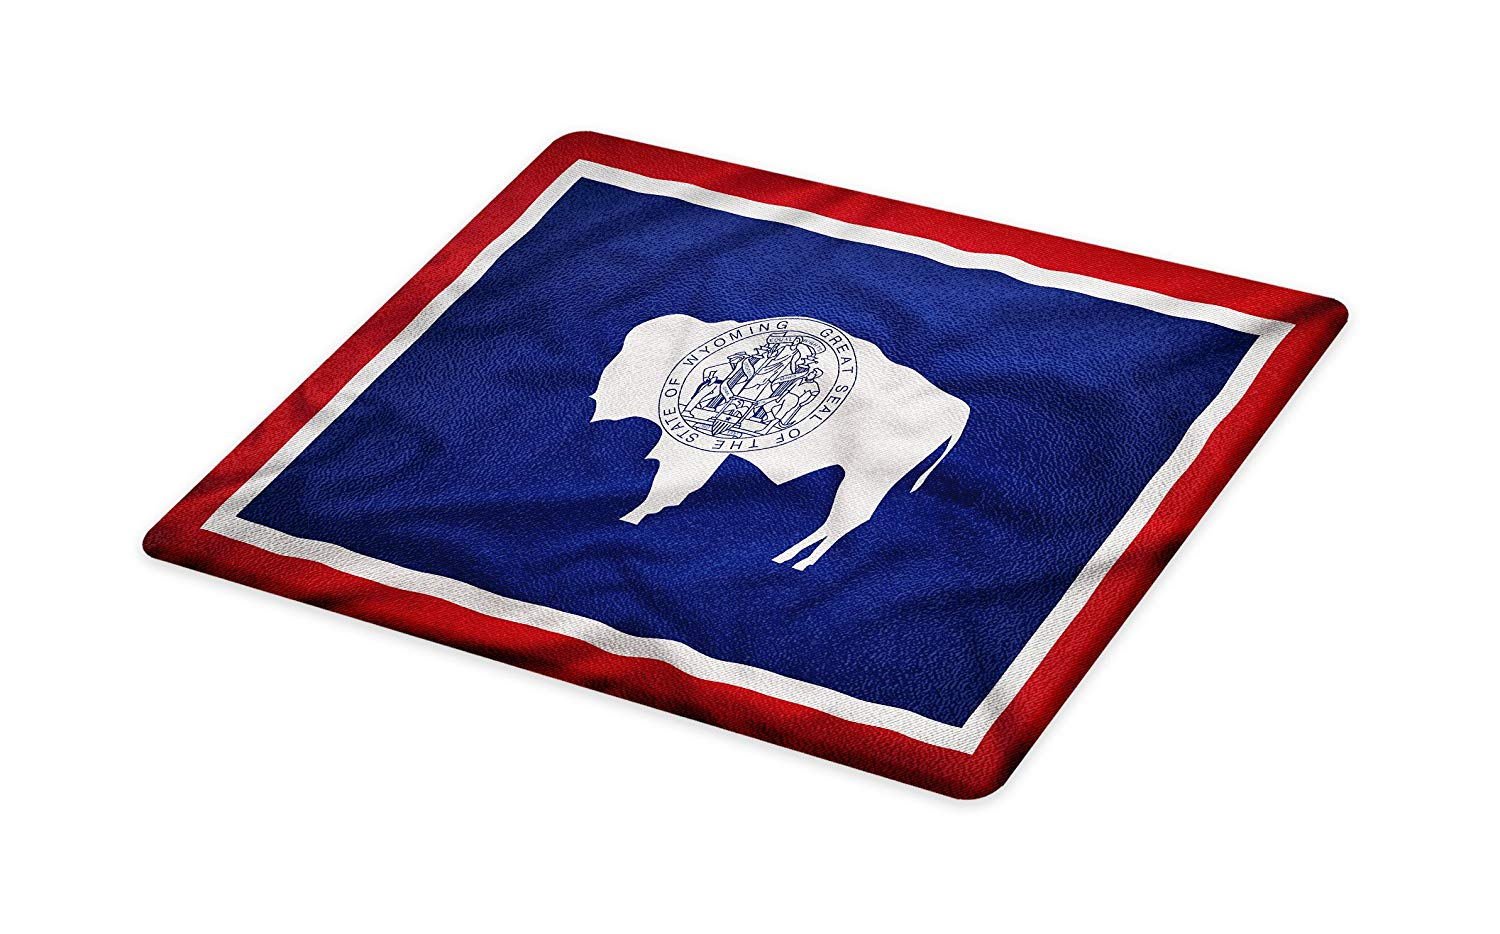 Lunarable American Cutting Board, Wyoming Flag American Bison Native Americans Purity and Uprightness, Decorative Tempered Glass Cutting and Serving Board, Small Size, Ruby Navy Blue Coconut